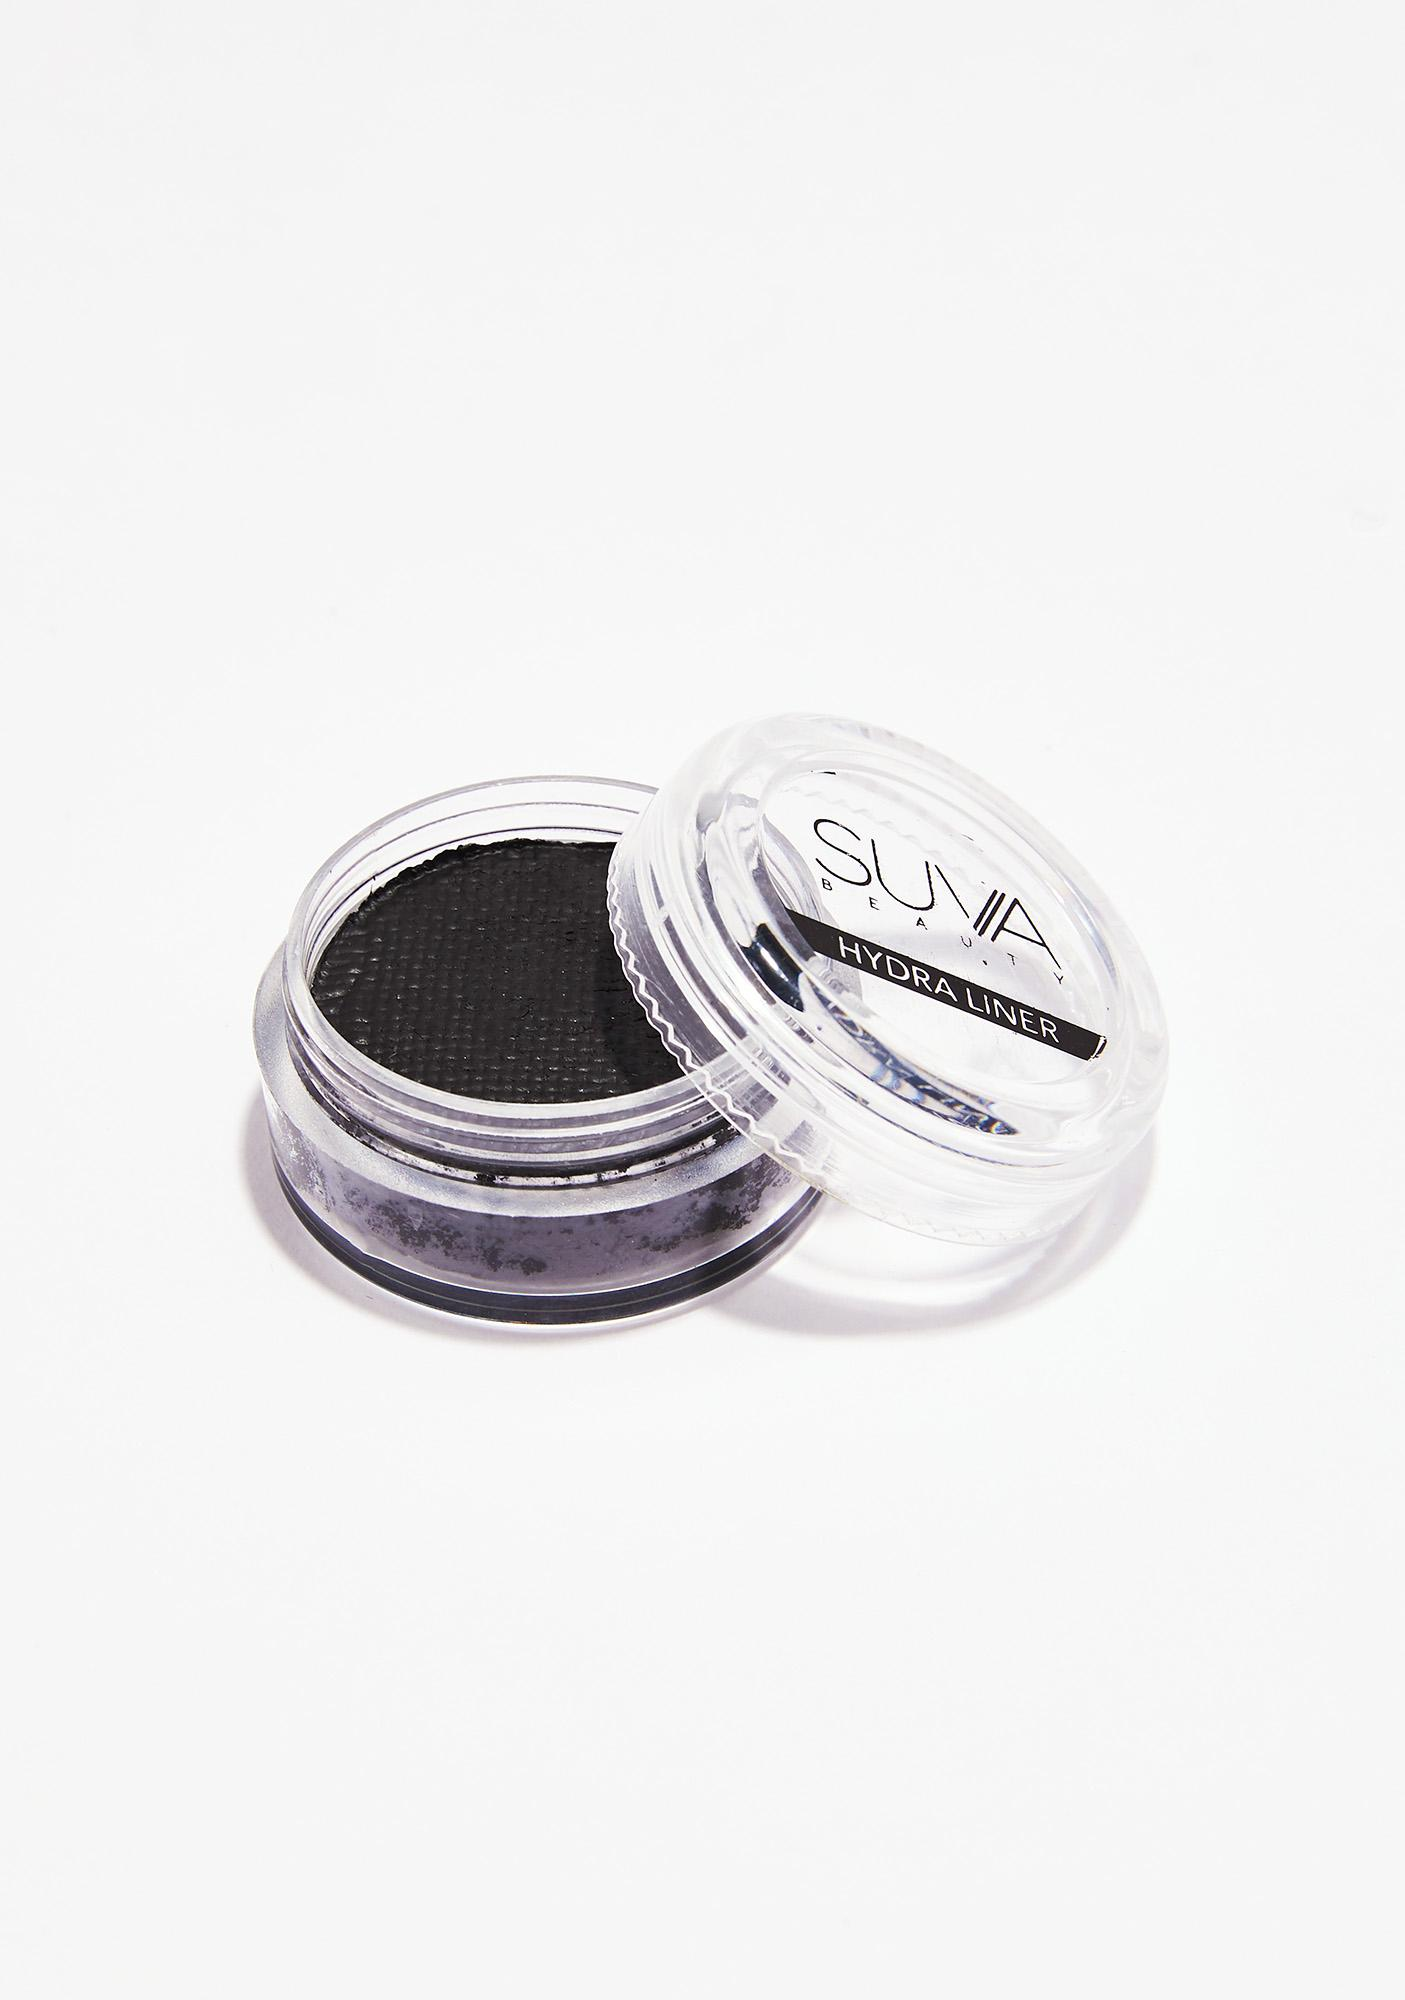 SUVA Beauty Grease Matte Hydra Liner